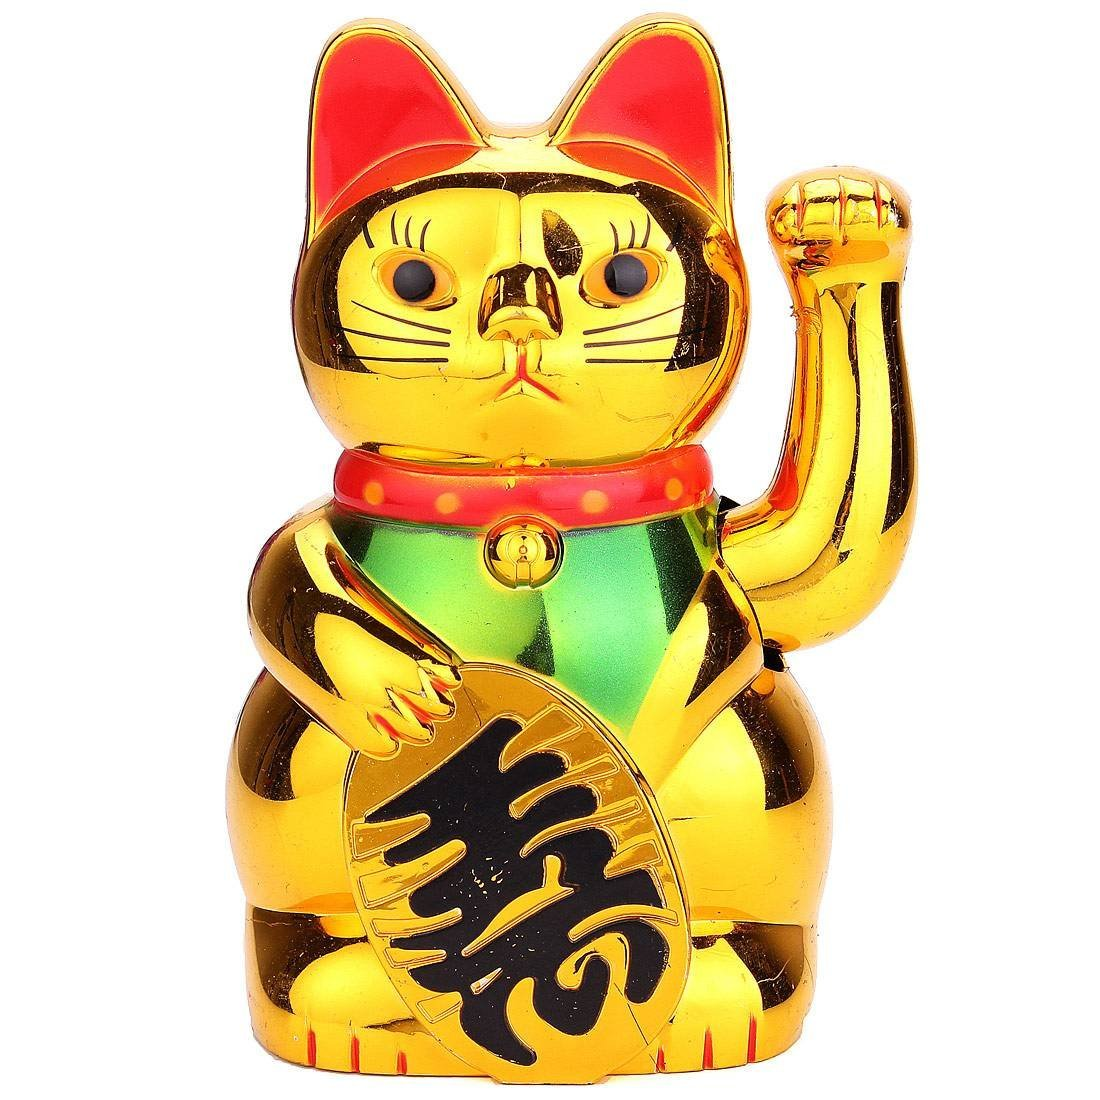 Plastic Gold Beckoning Waving Lucky Cats Figure Moving Arm Chinese Wealth Fortune Feng Shui Home Hotel Decor Craft Supplies